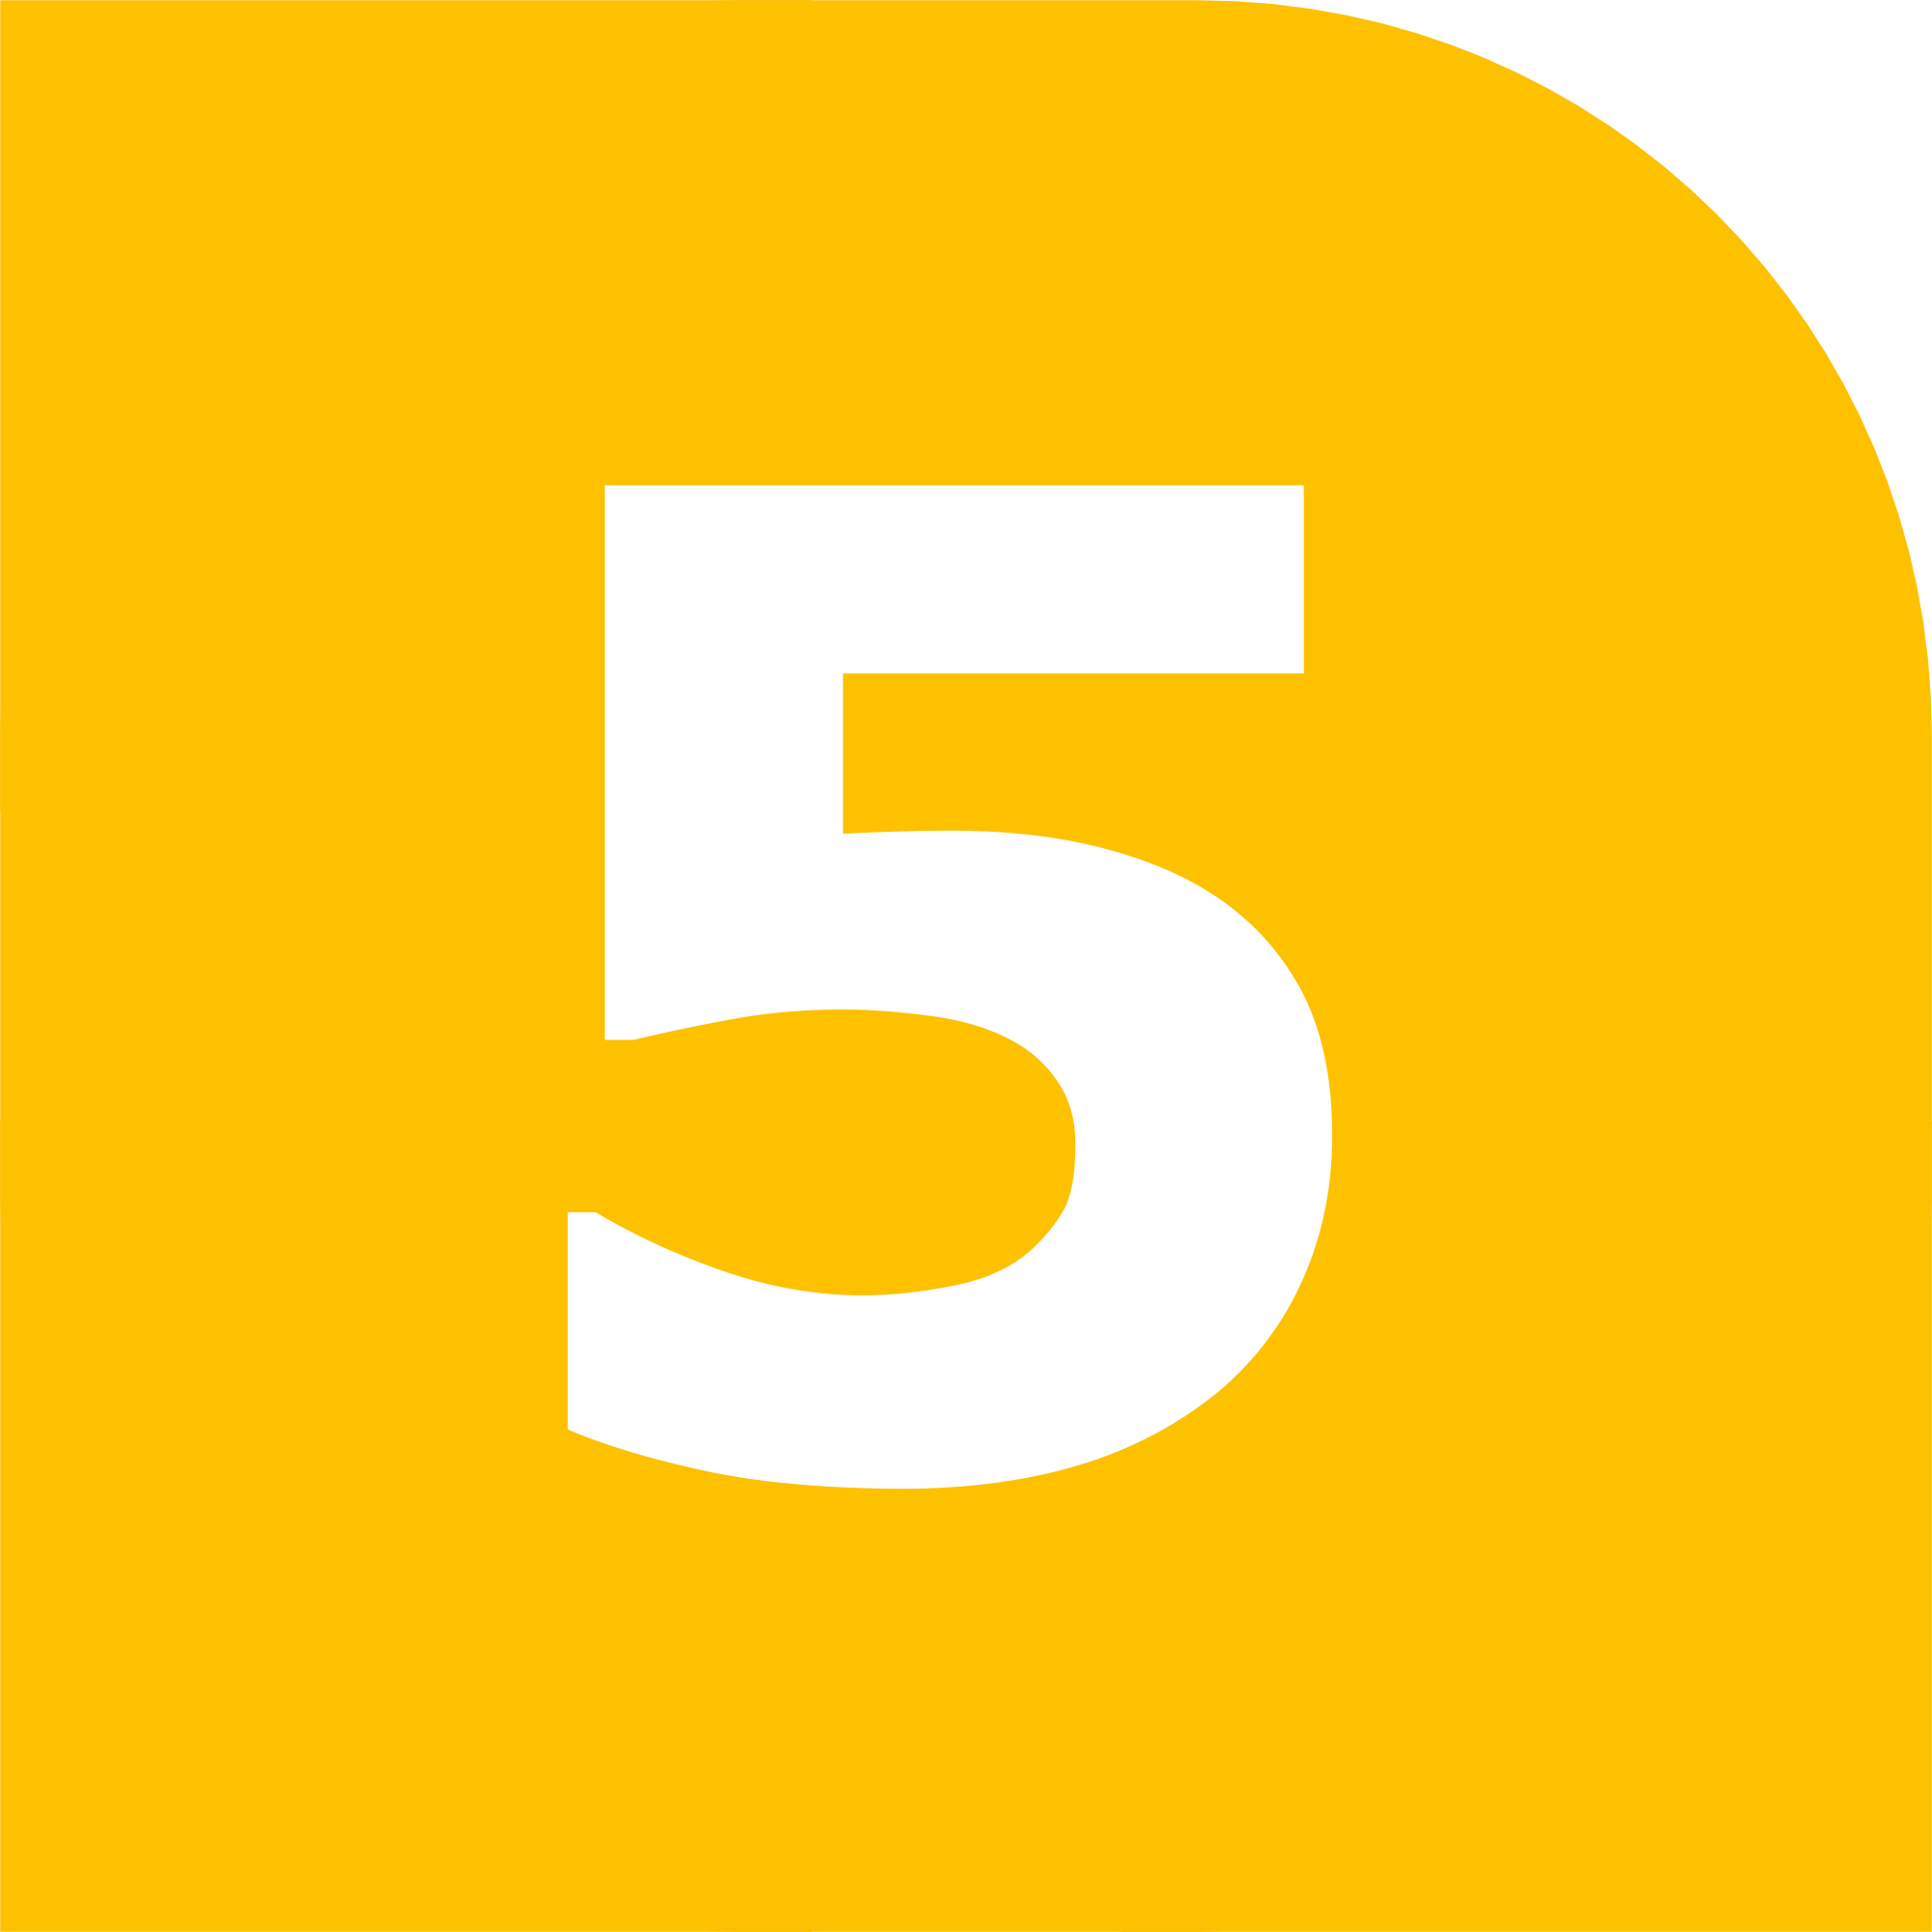 File:STC line 5 icon.png.